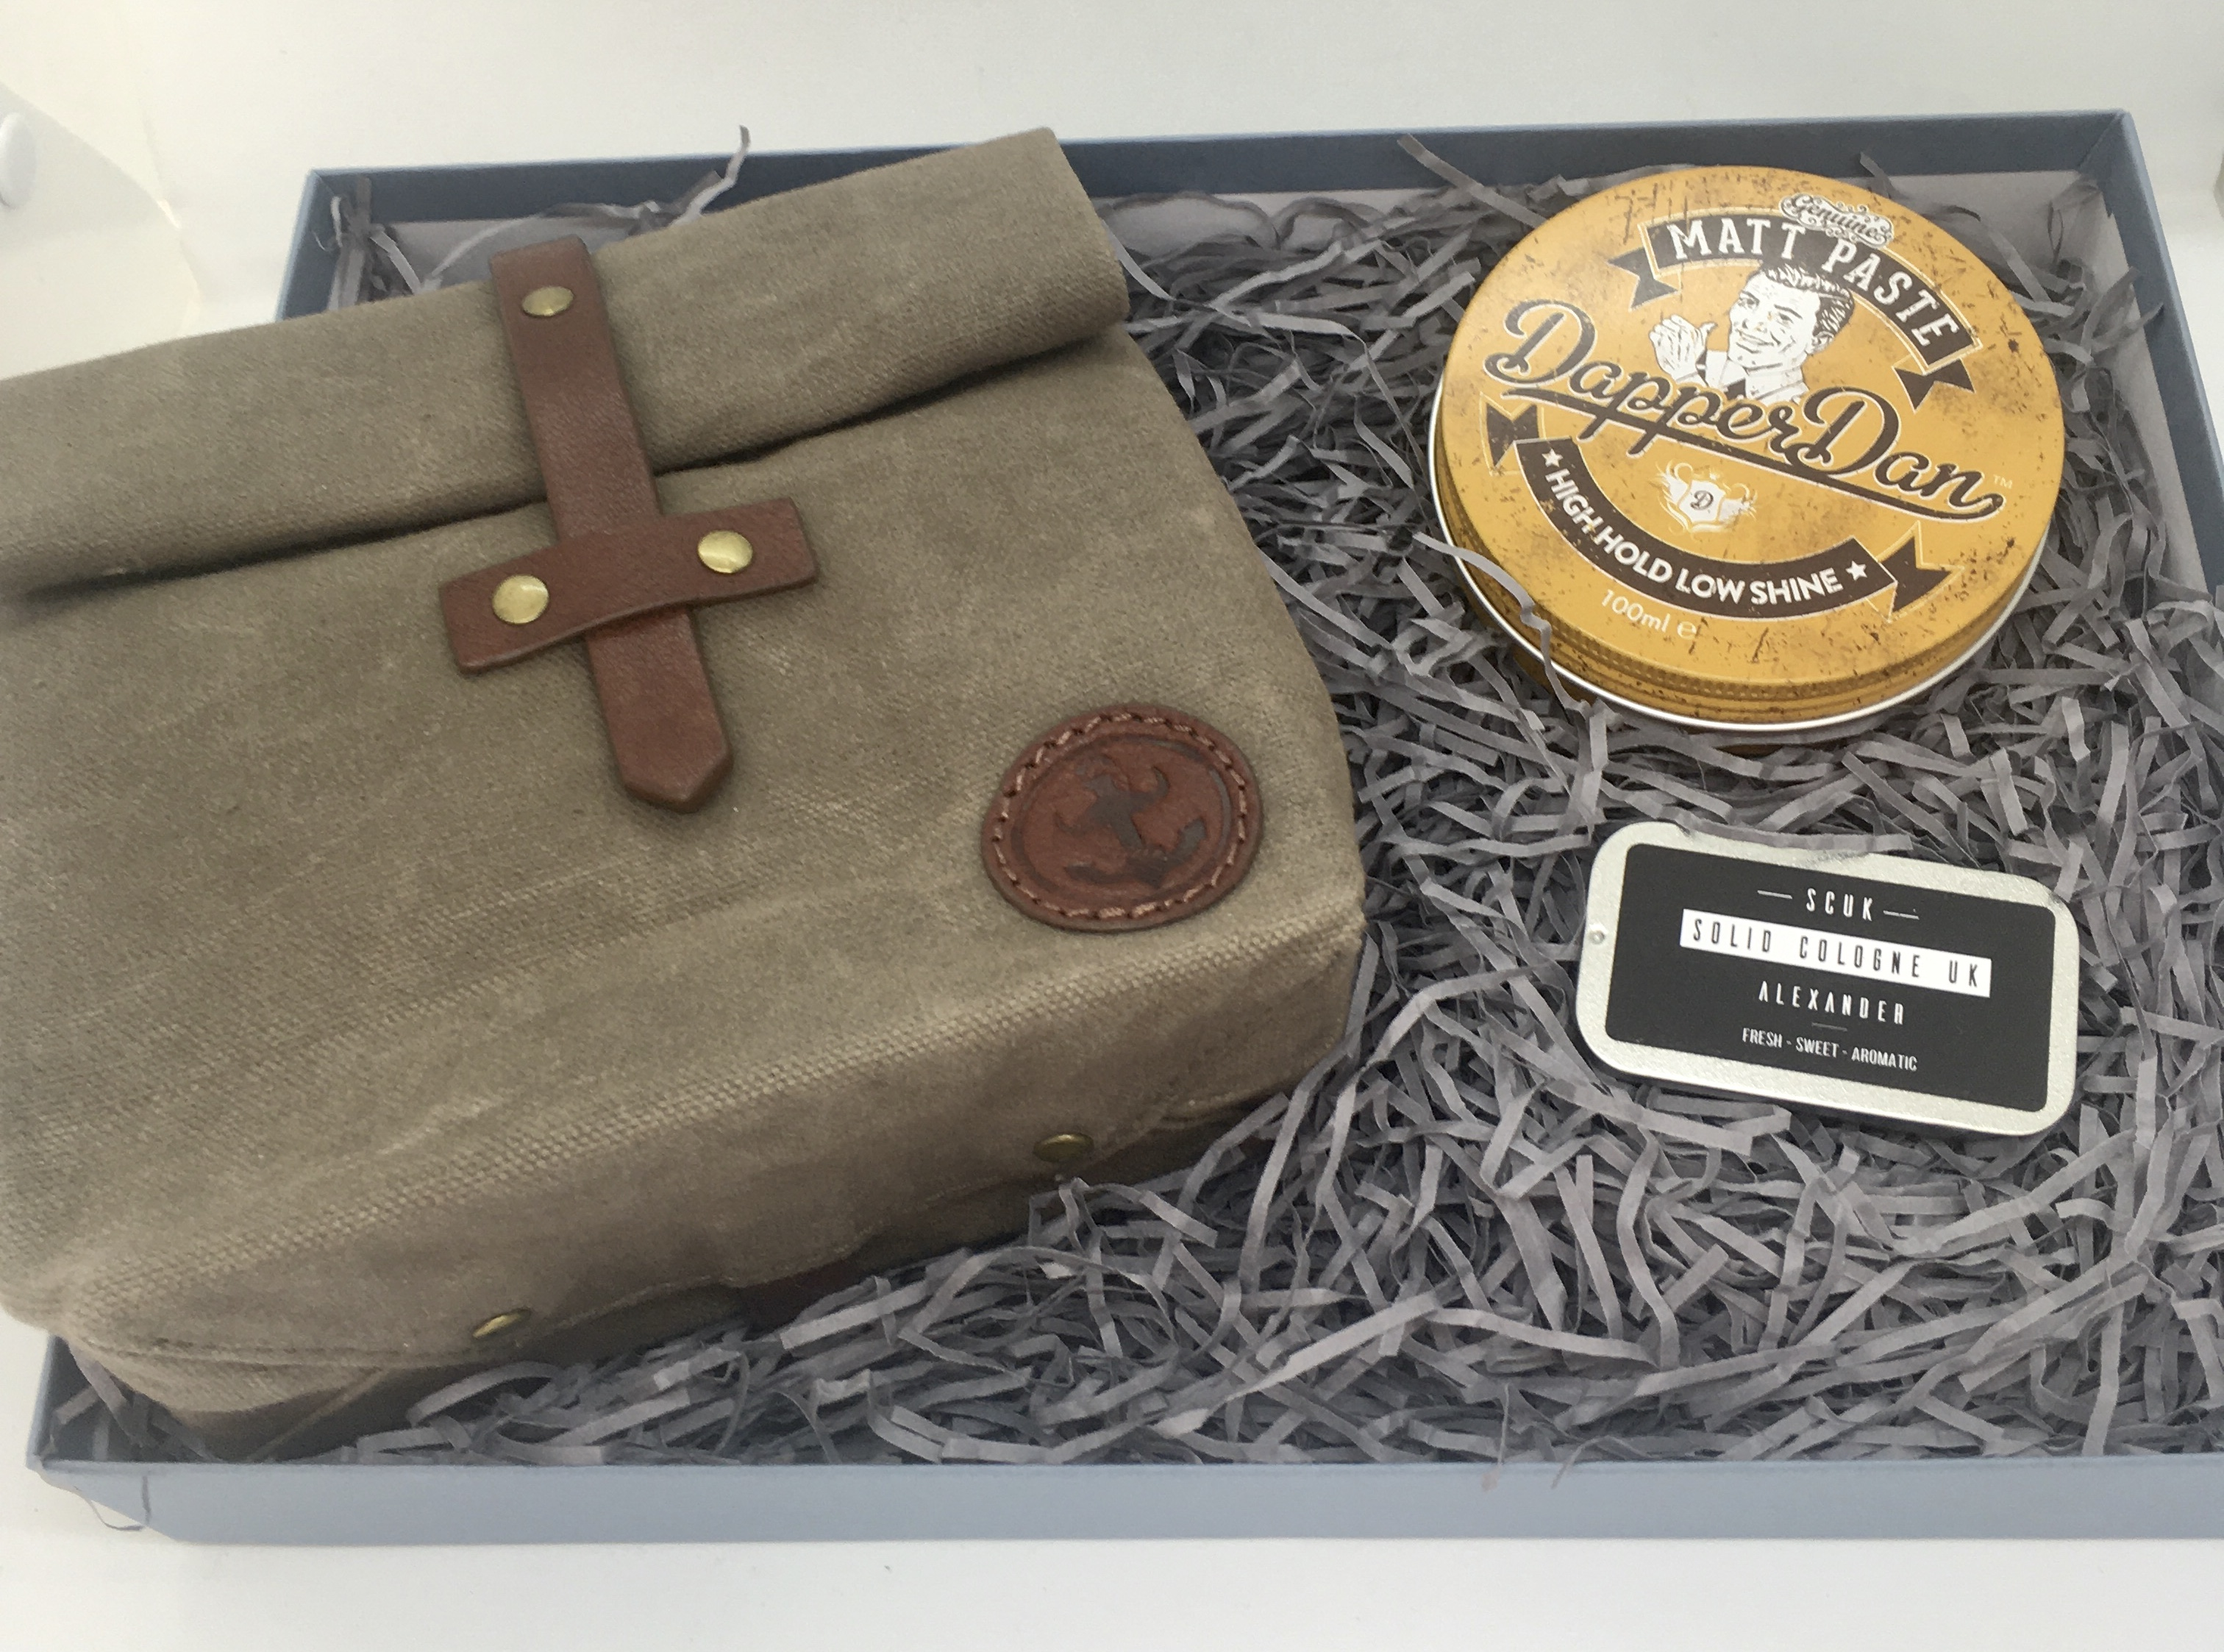 Solid cologne with wash bag and hair tin gift box